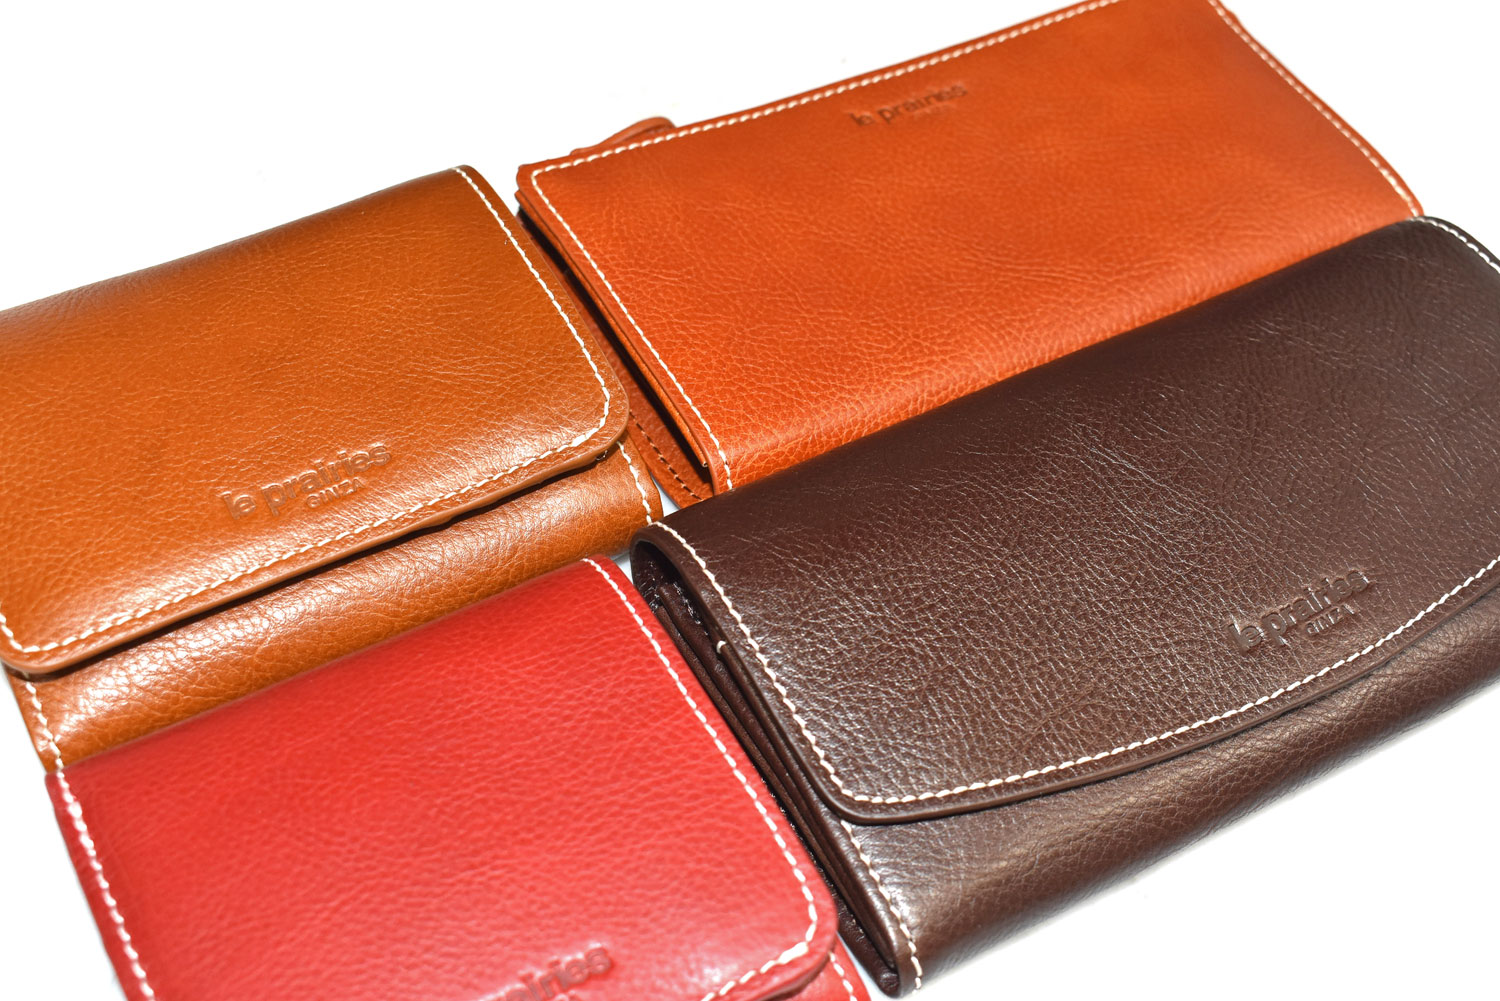 【le prairies】ladies recommended wallet